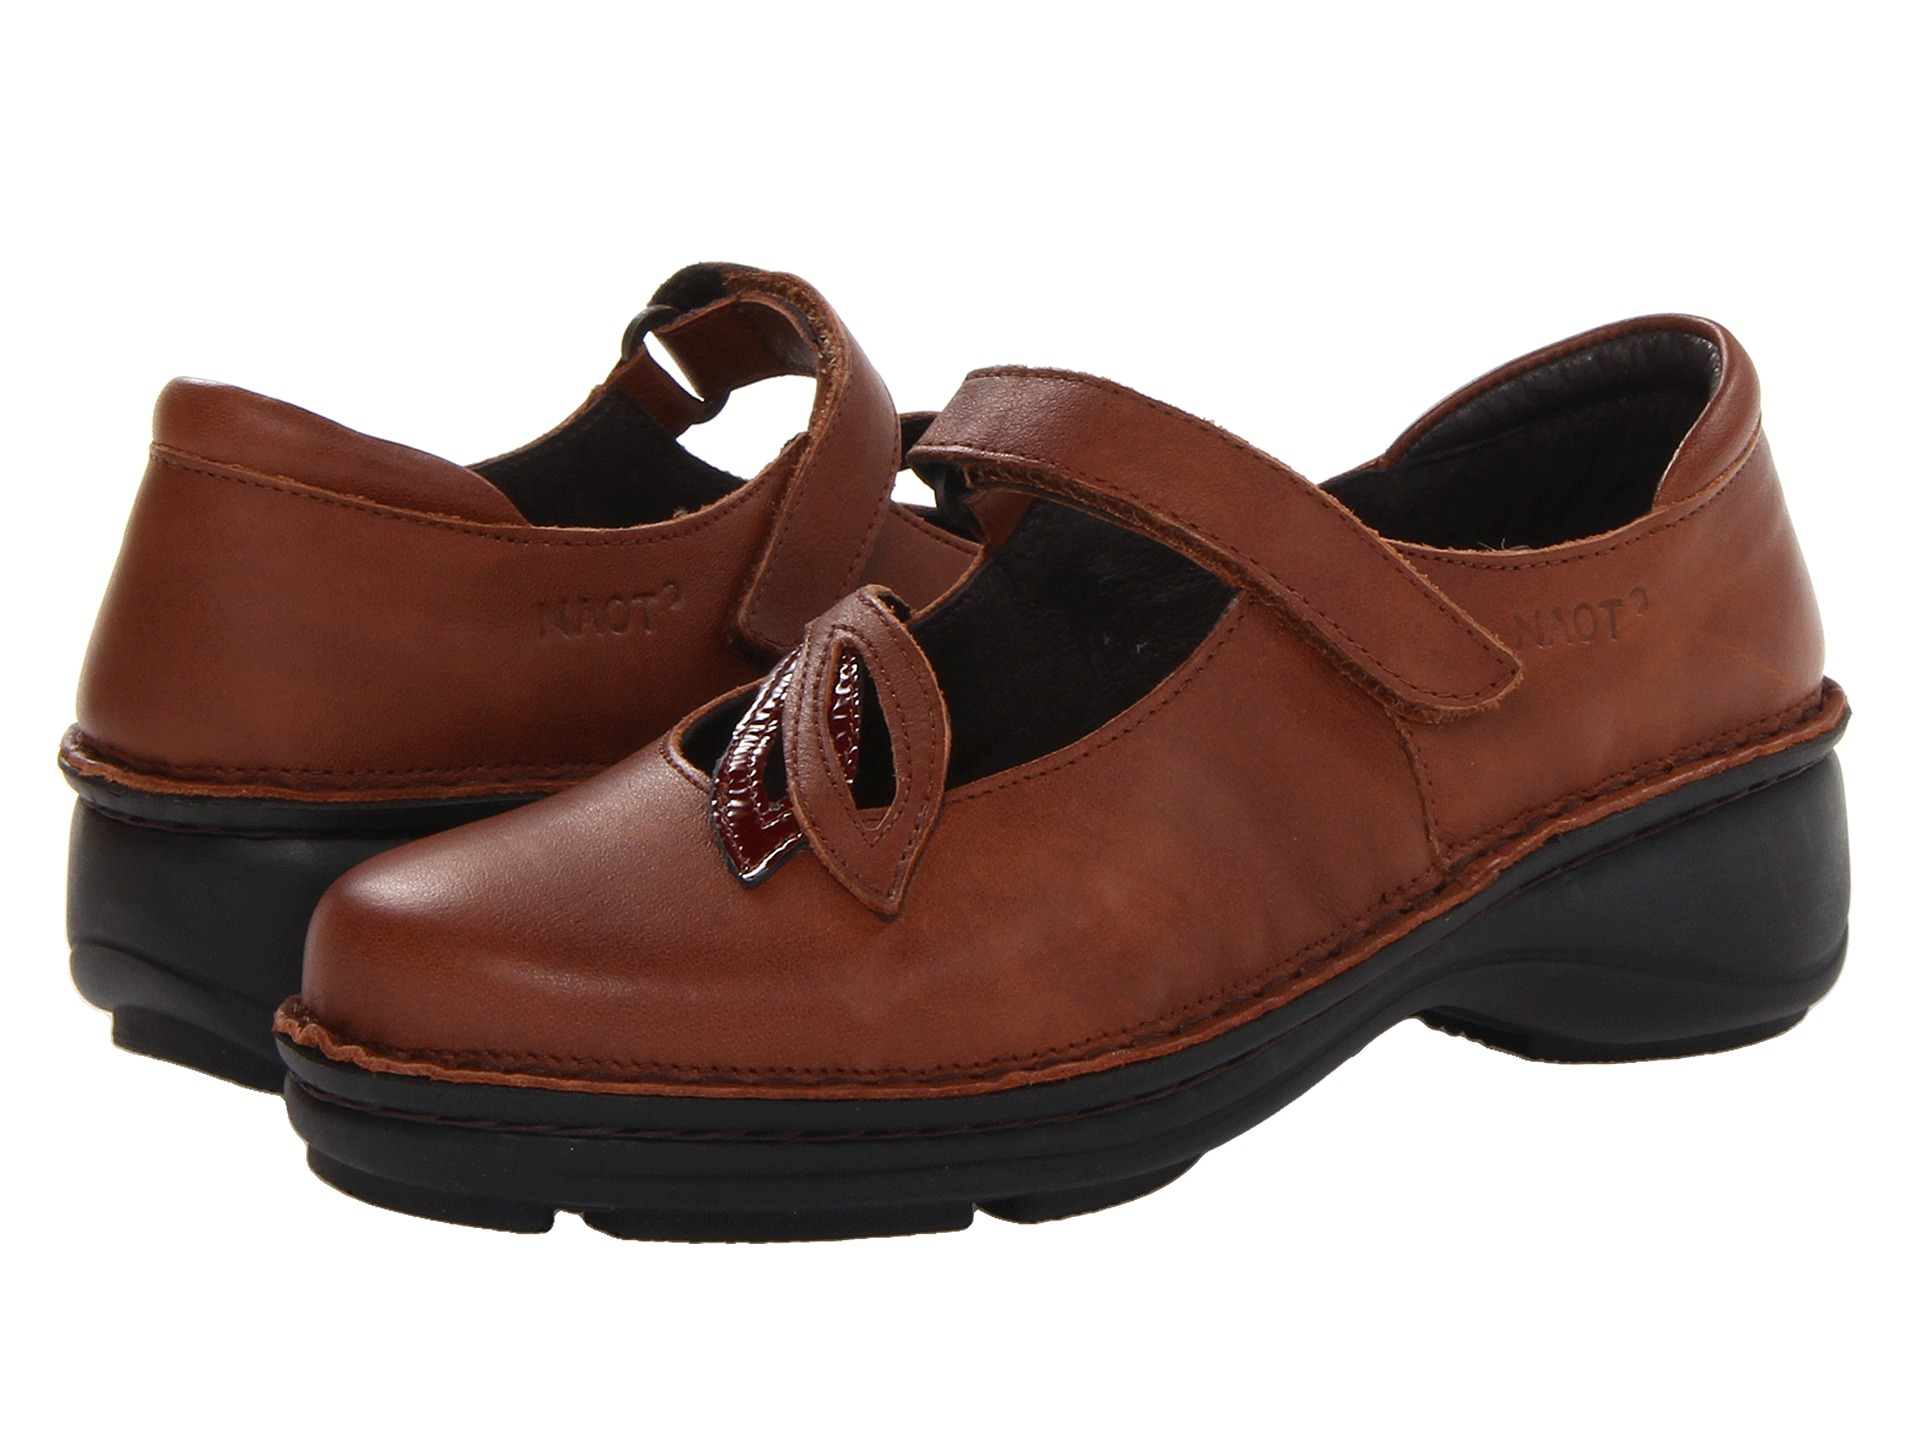 Buy NAOT Shoes Online - Our Brands